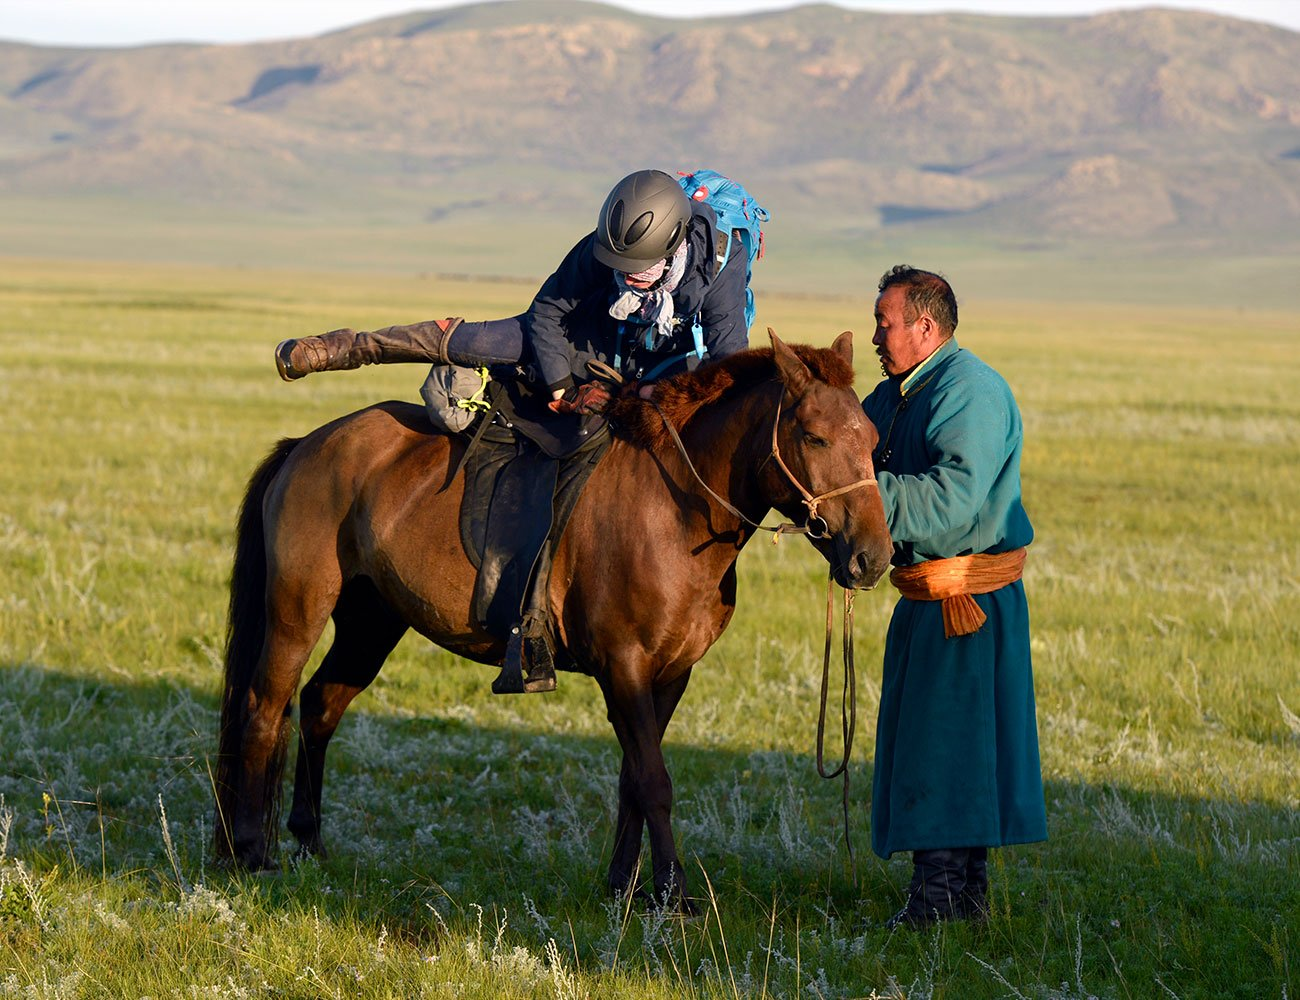 Mongol Derby - Mount up